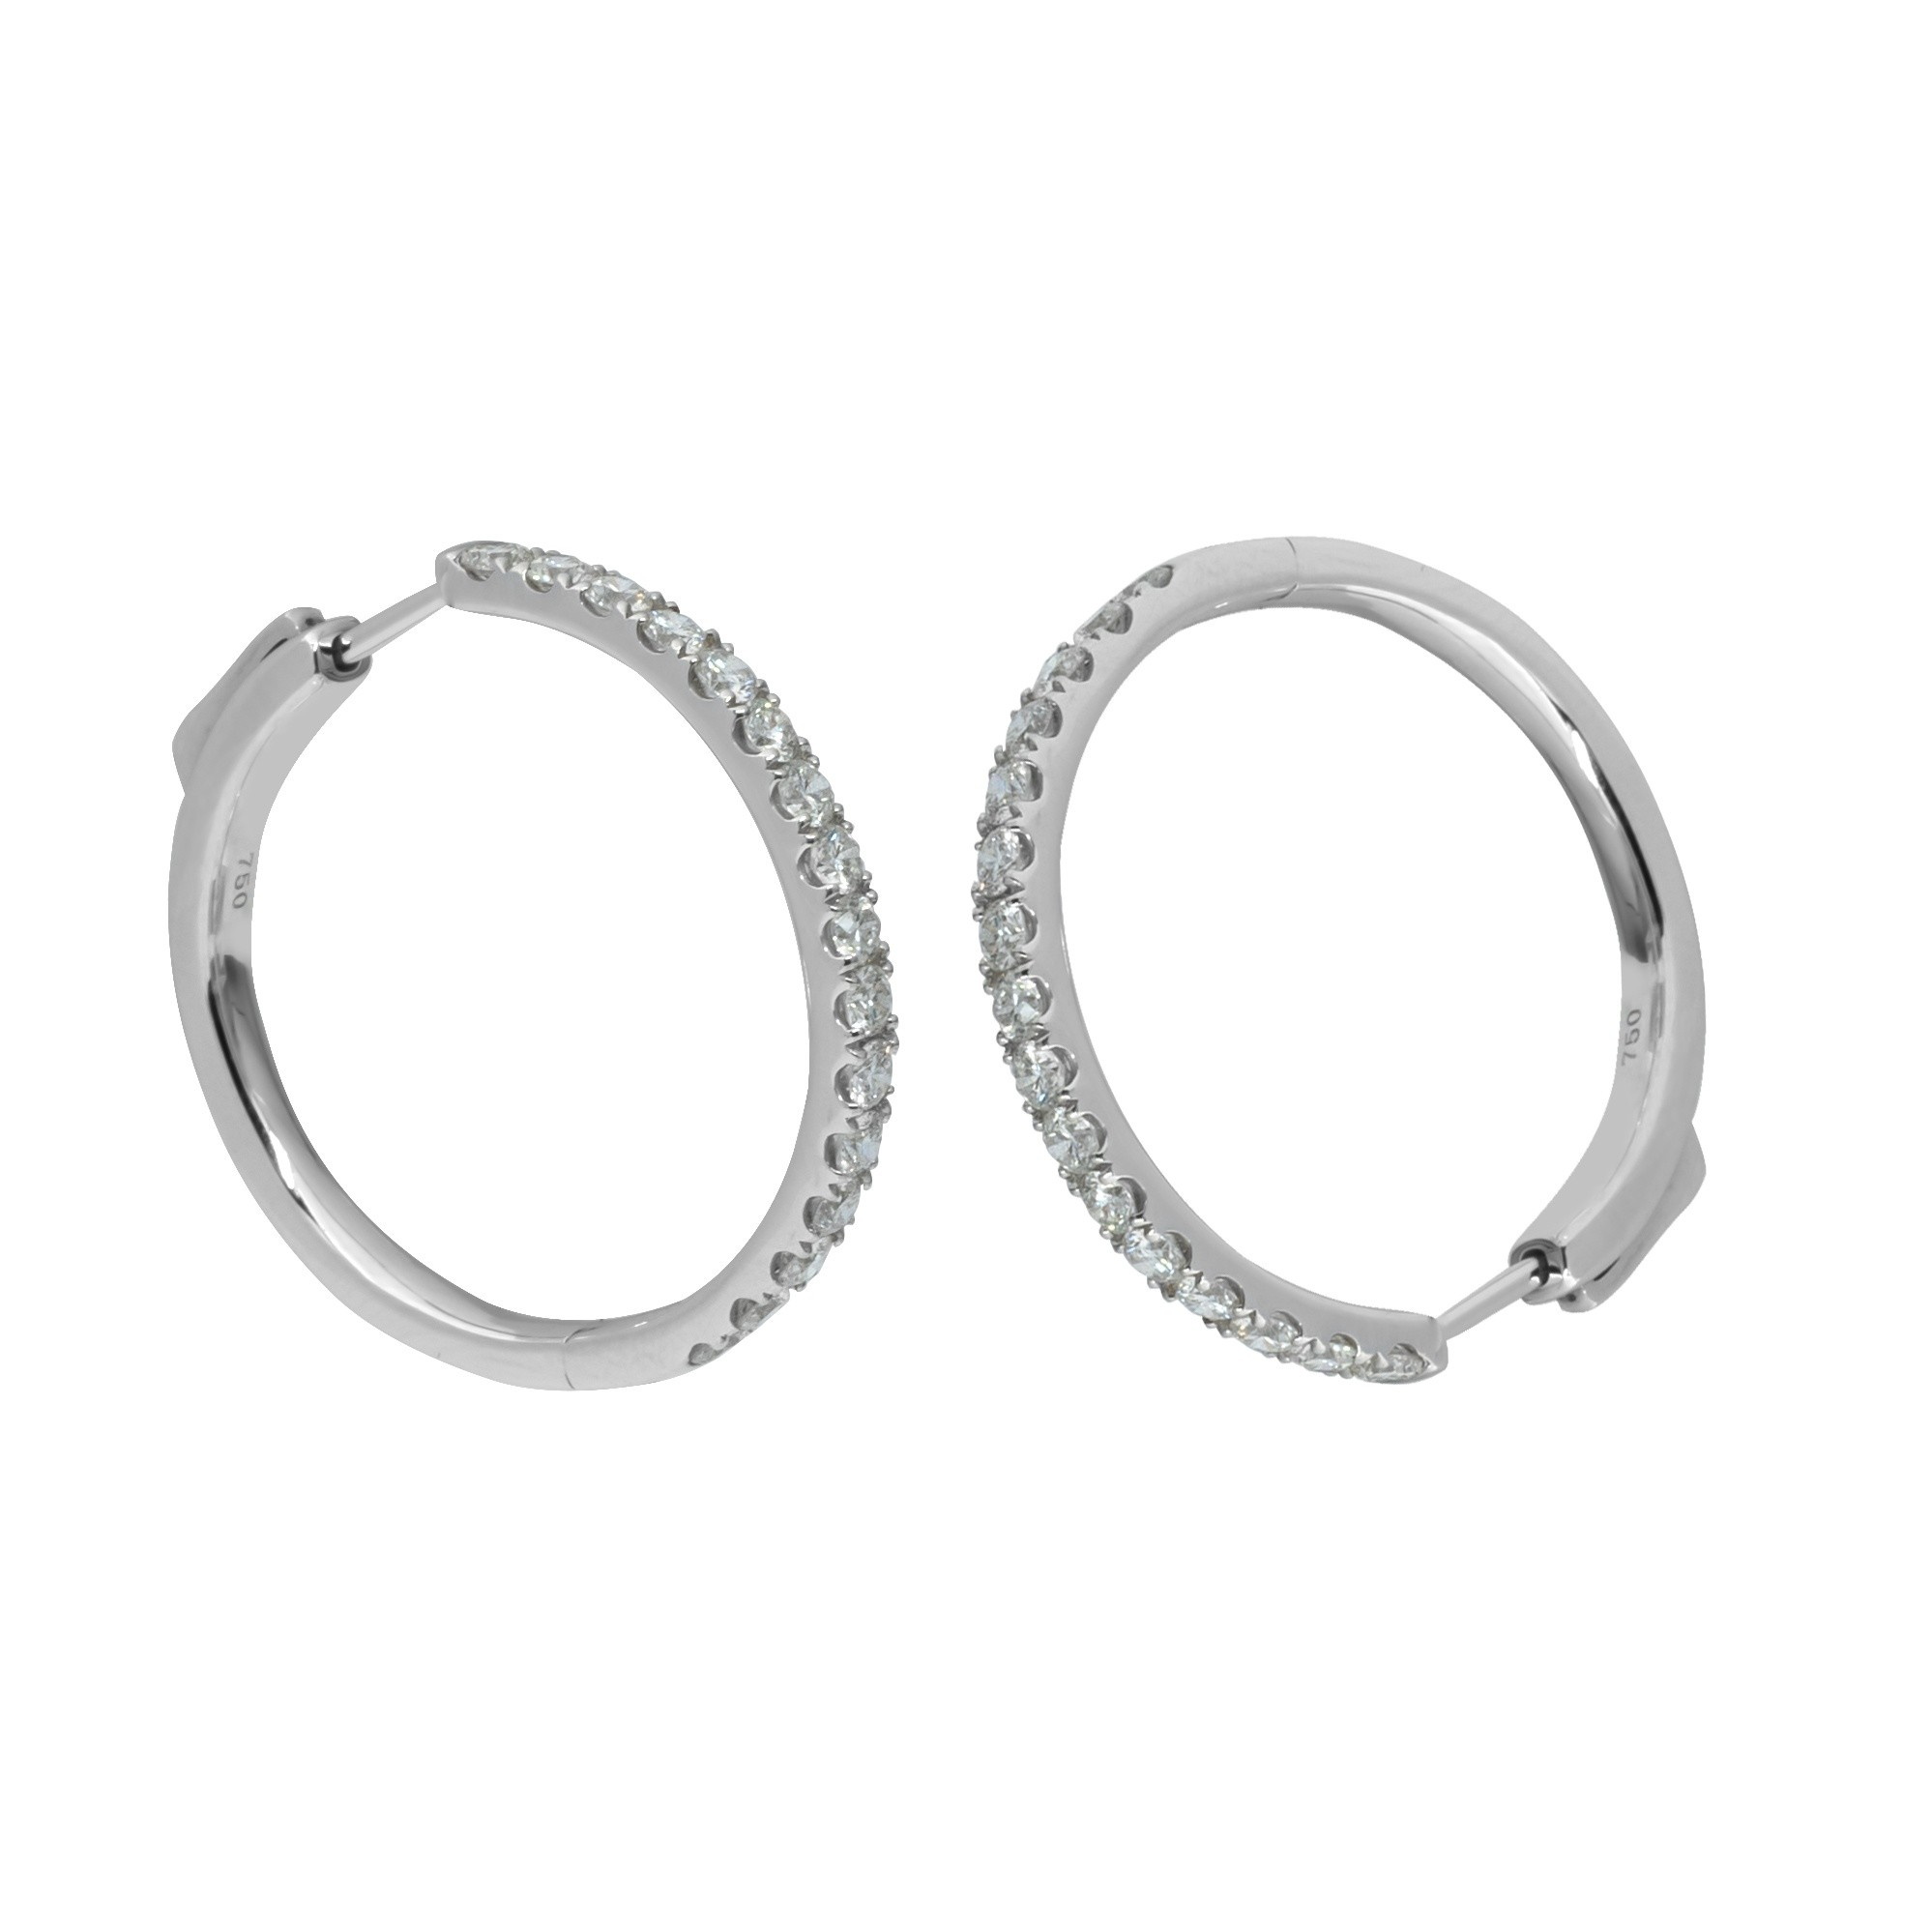 ne pair of 18ct white gold huggie earrings set with natural Diamonds